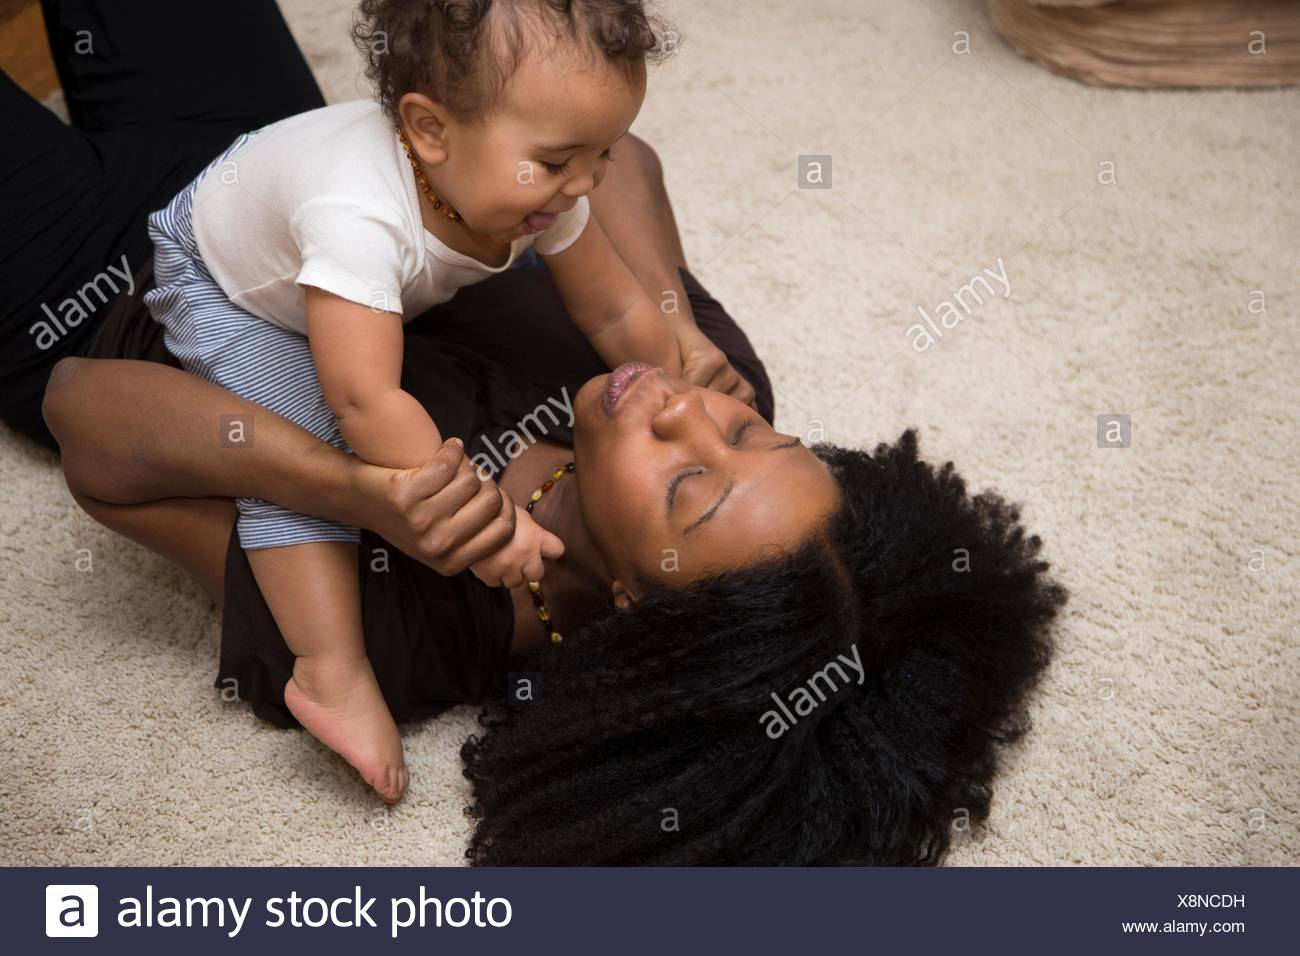 Mid adult woman playing with toddler daughter on rug - Stock Image